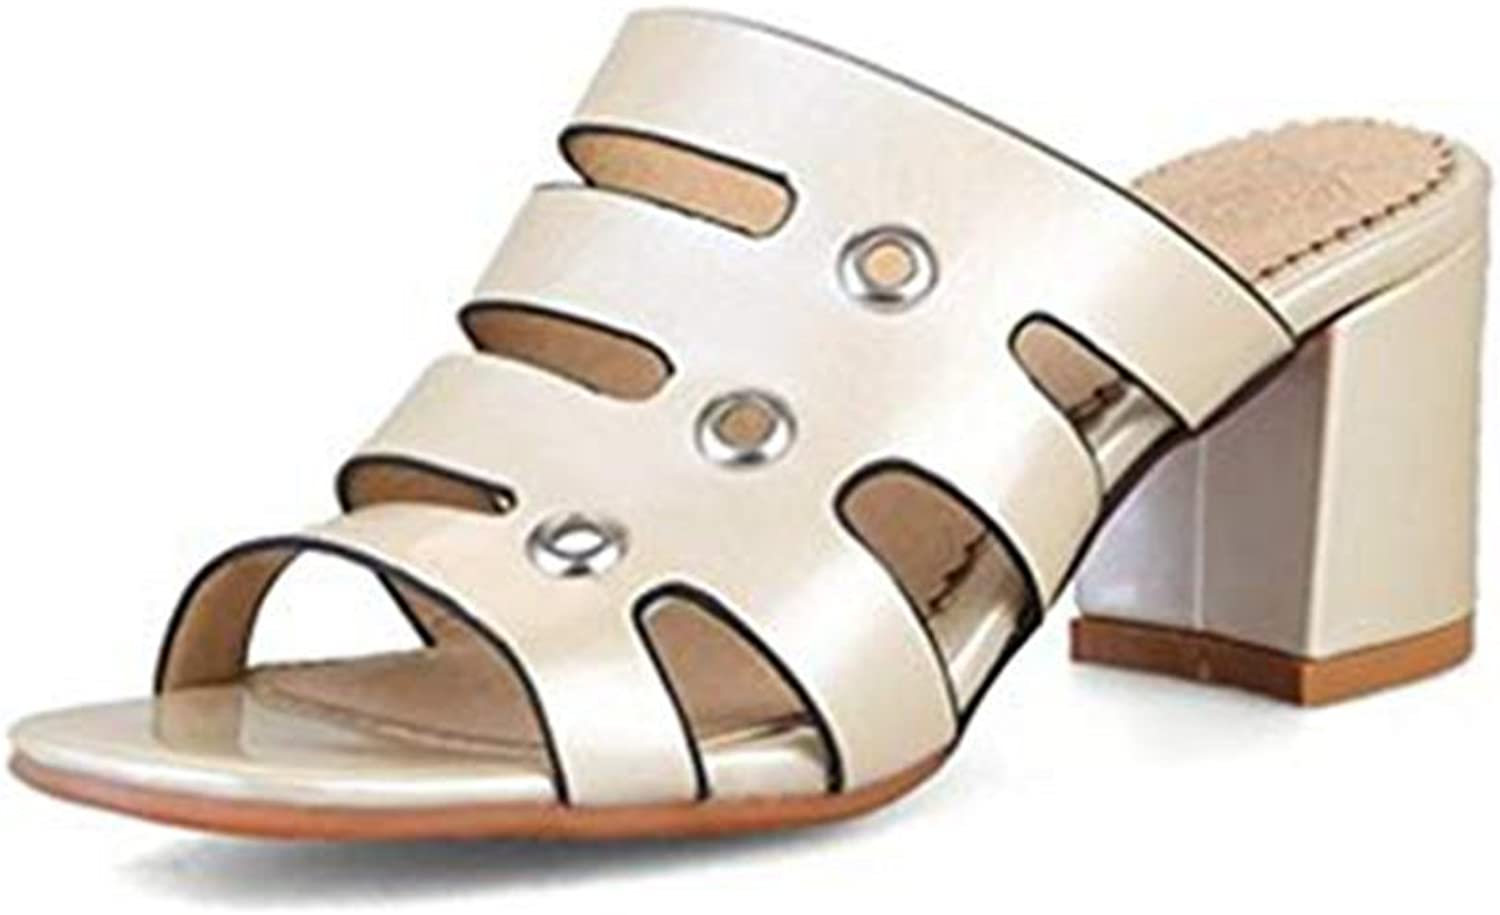 T-JULY Fashion Gladiator Sparkle Glitter Heels Hollow Out Sandals for Women Open Toe Chunky Heeled Dress Pumps shoes